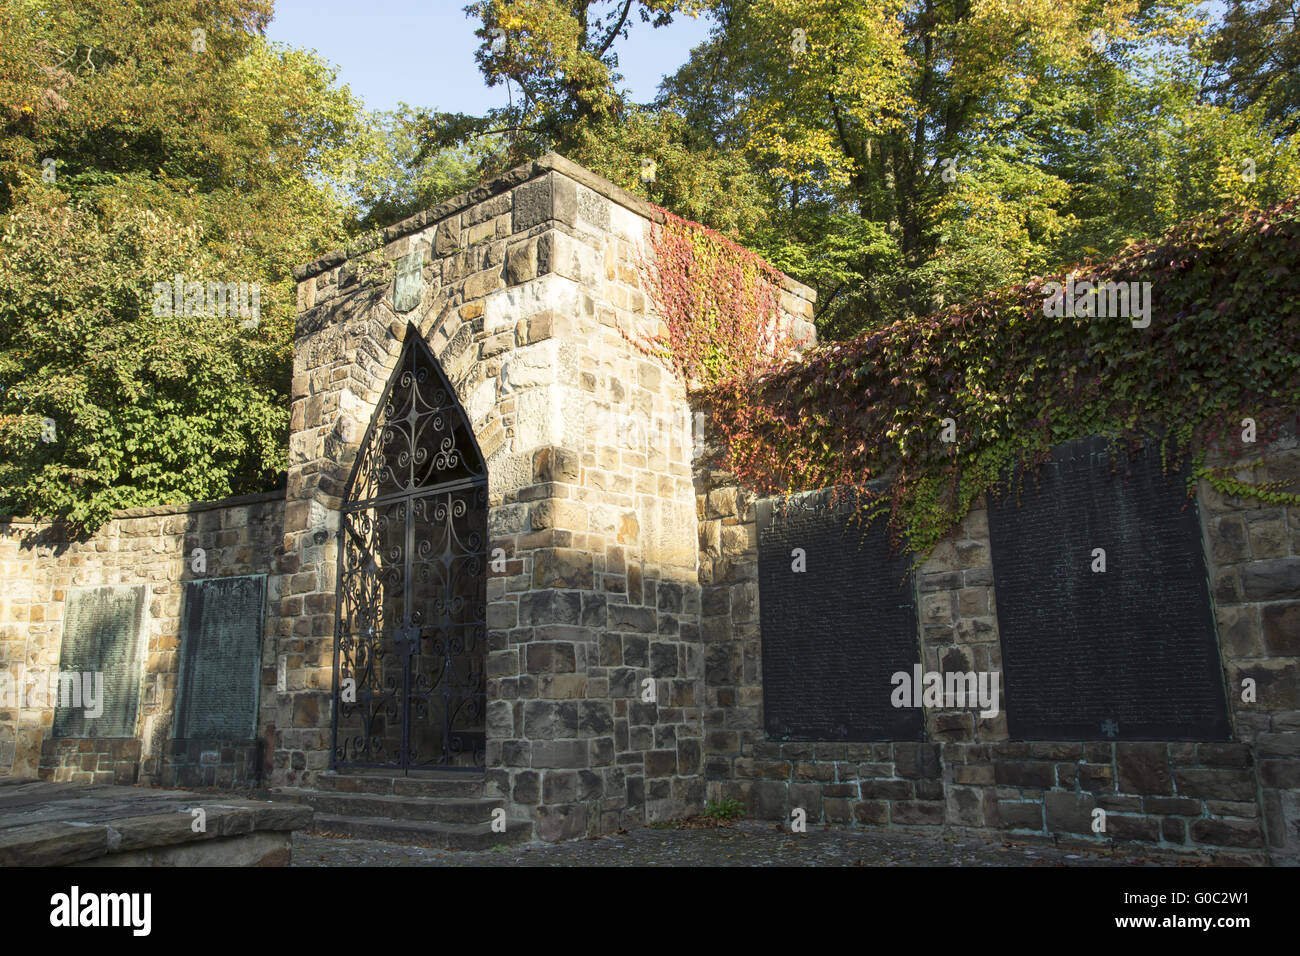 Cenotaph at the Lohtor, Recklinghausen, Germany - Stock Image